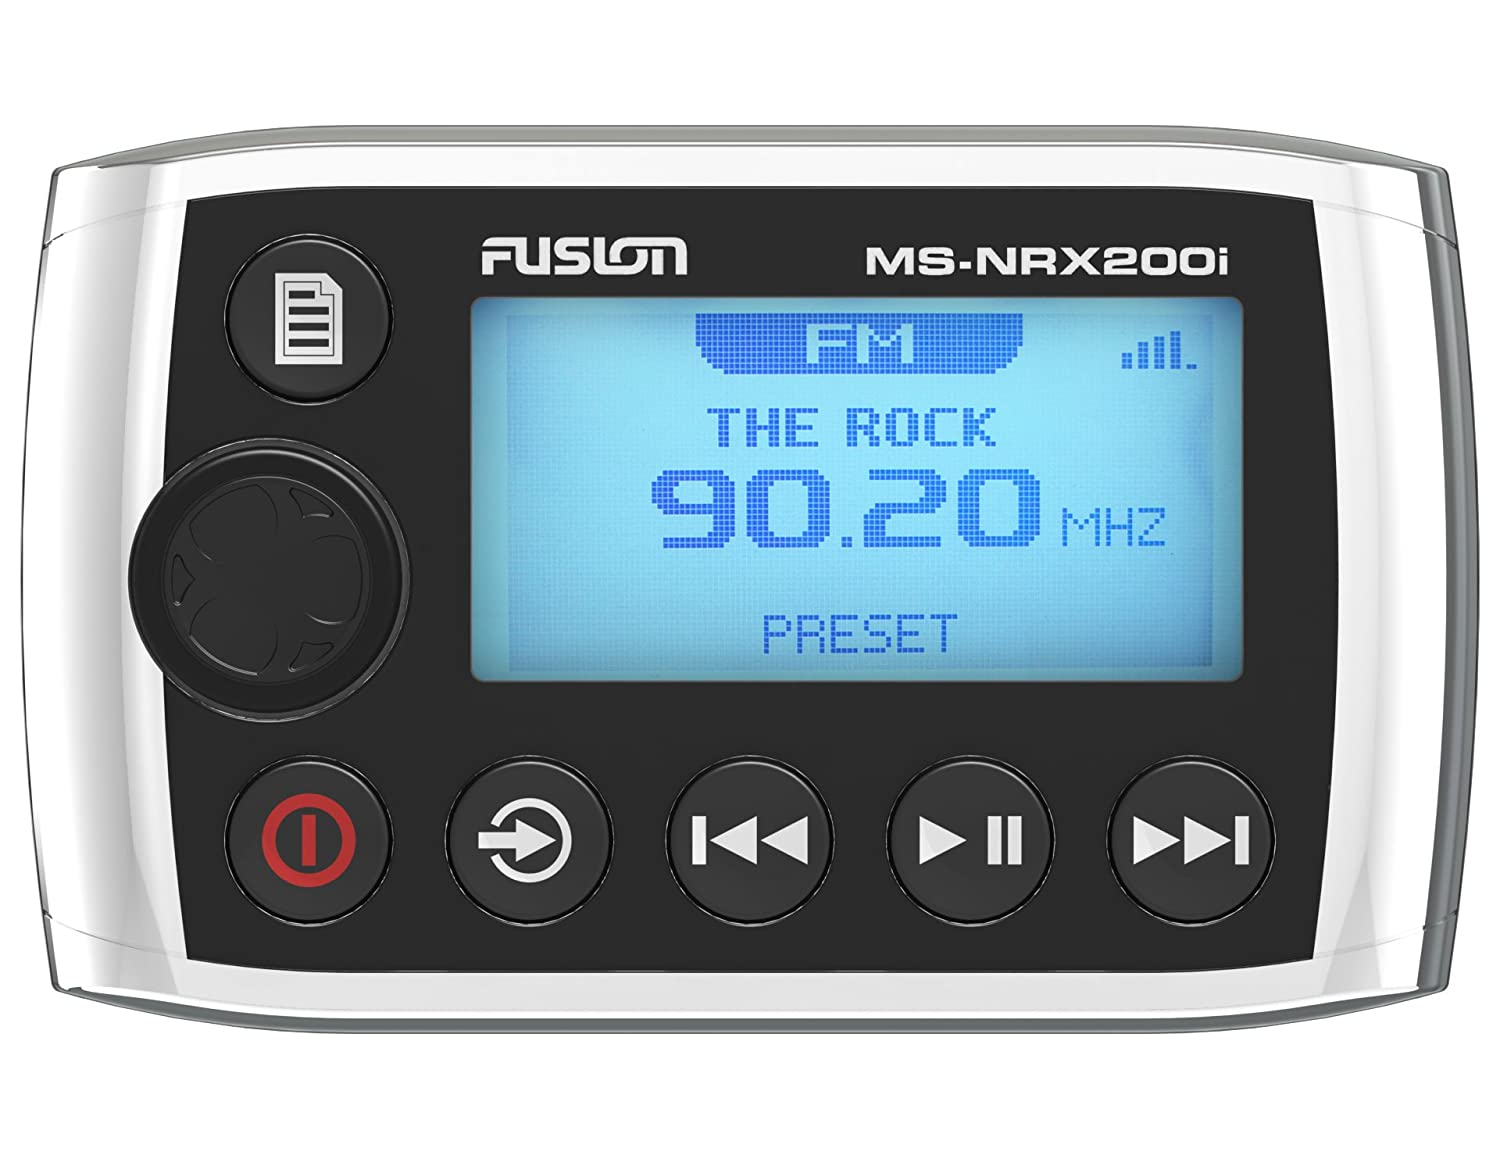 Amazon.com: Fusion MS-NRX200i Marine Wired Remote for MS-IP700i, MS ...